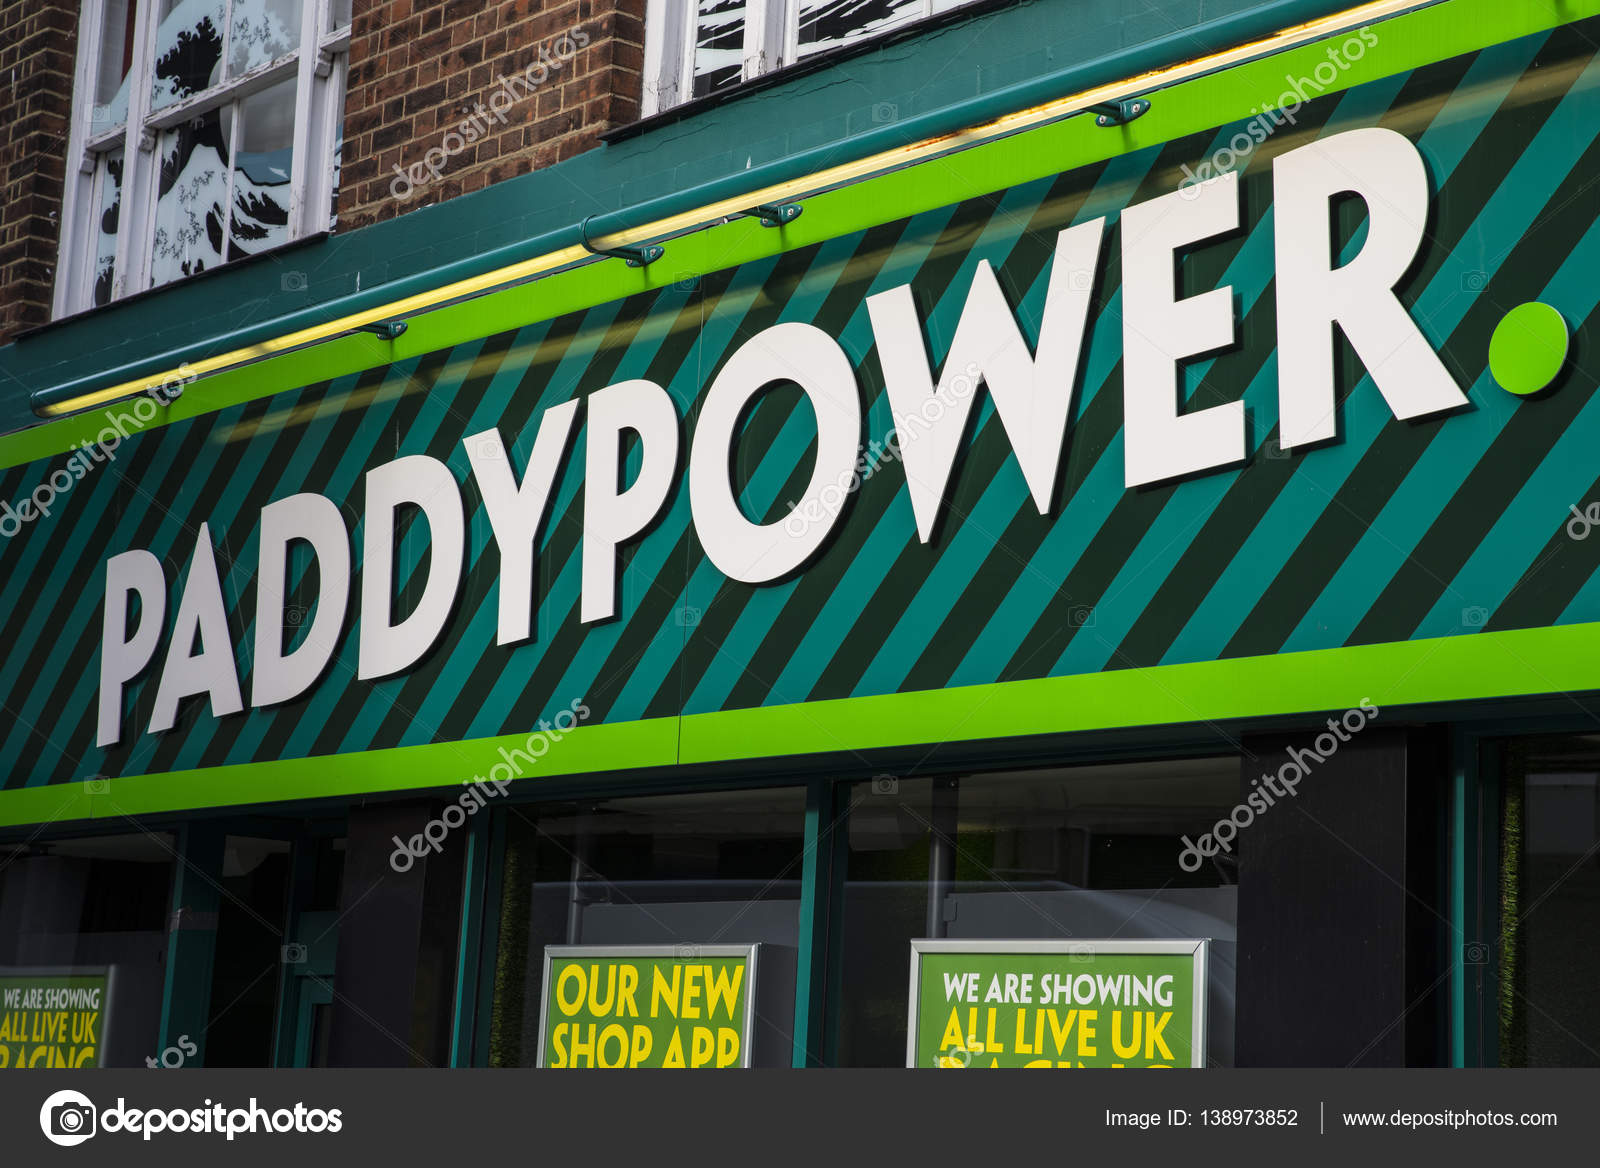 Paddy power uk betting shops germany young player of the year 2021 betting lines